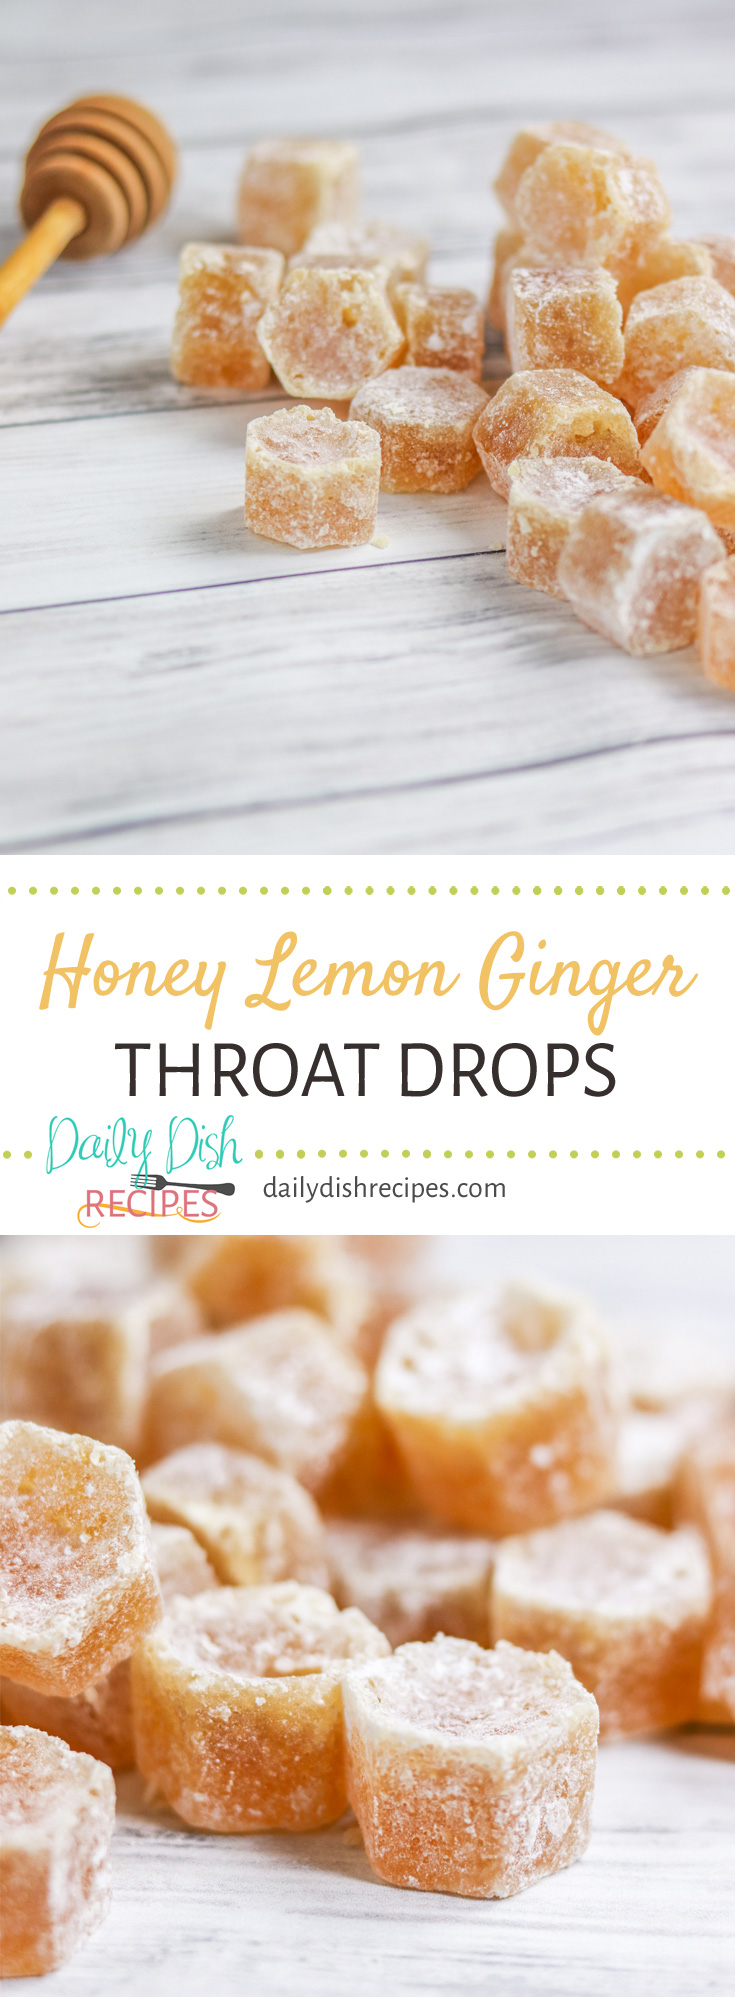 Spring cold? Sore throat? Cough that won't go away? These Homemade Honey Lemon Ginger Throat Drops are incredibly soothing, taste wonderful and when you're feeling better, drop the leftovers in your hot tea to sweeten it. Delicious to the last drop.